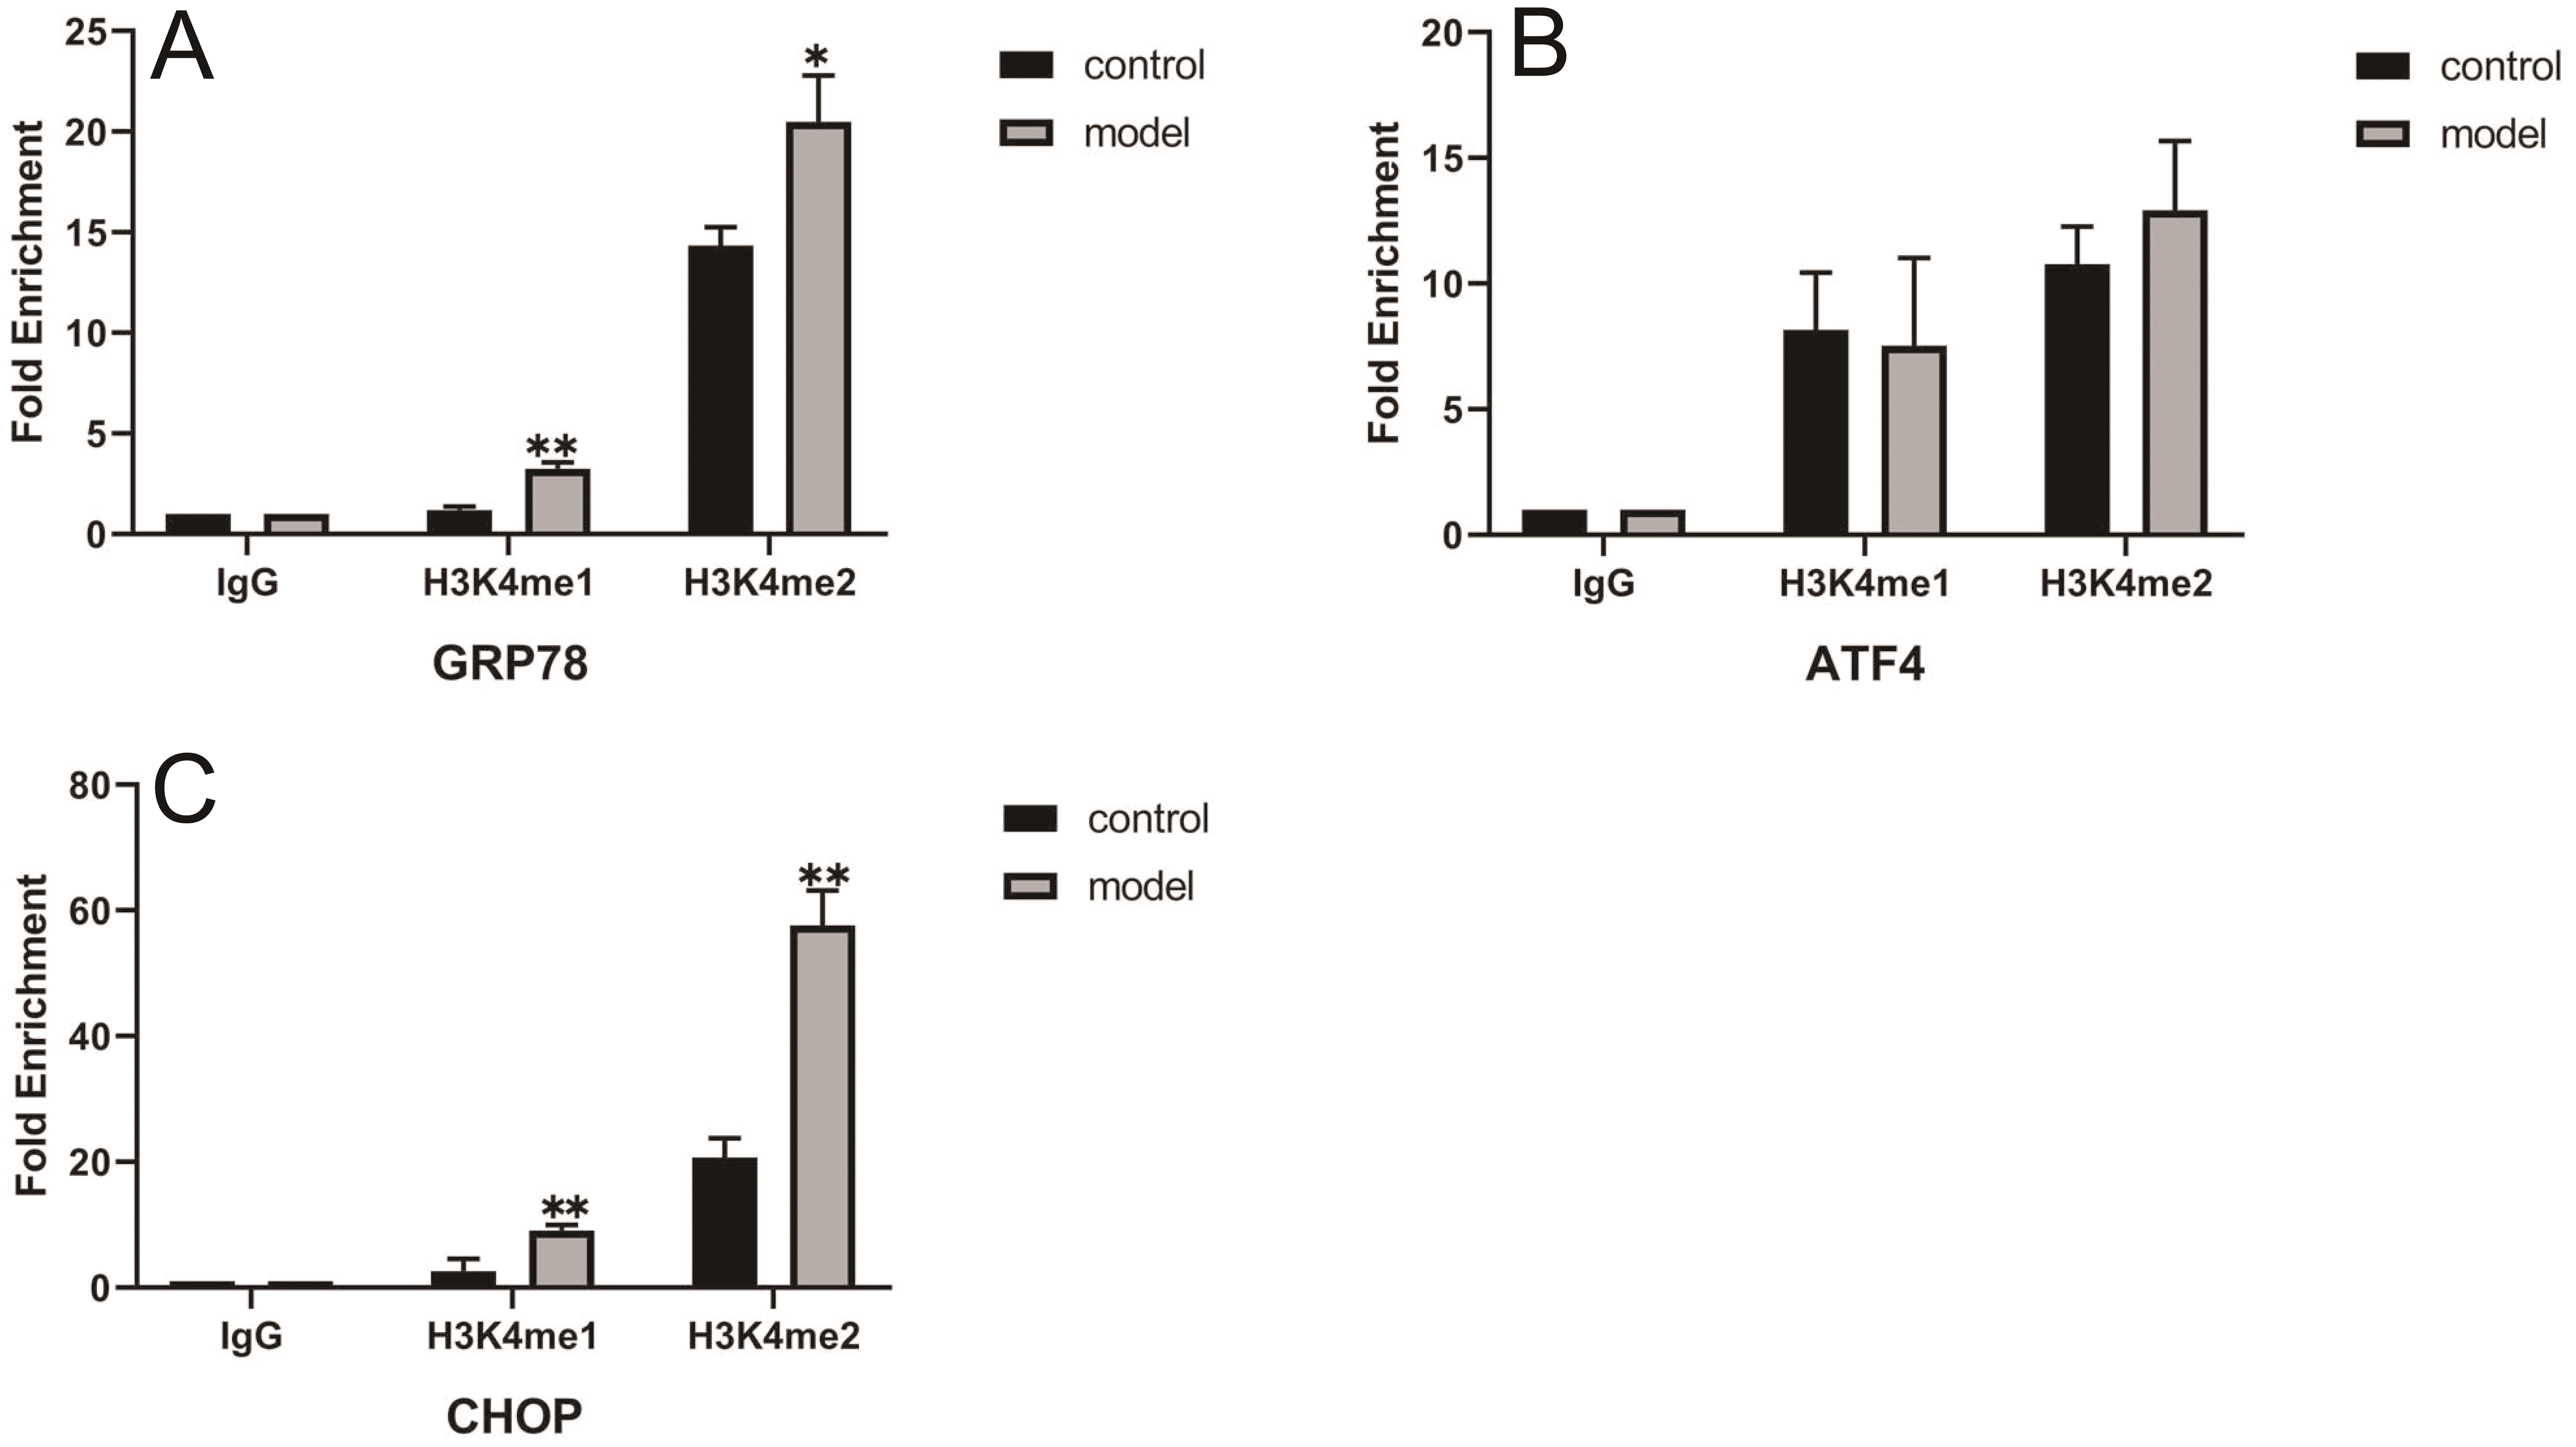 Effect of H3K4me1 and H3K4me2 on GRP78, ATF4, and CHOP promoter activity in L02 hepatocytes.